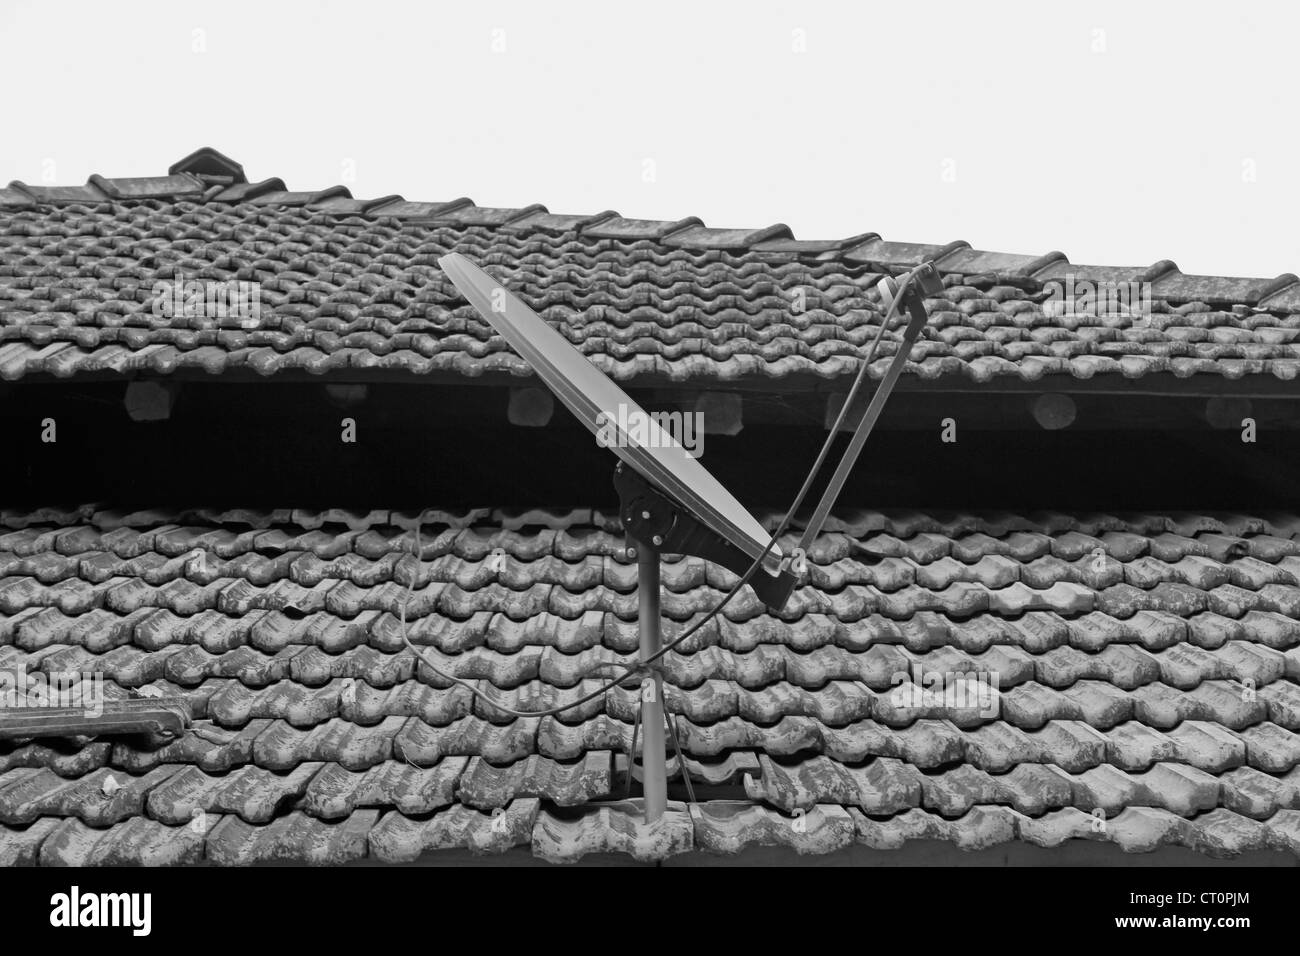 A dish antenna of a television set on a Traditional sloping roof made with Manglori tiles, Ratnagiri, Maharashtra, - Stock Image